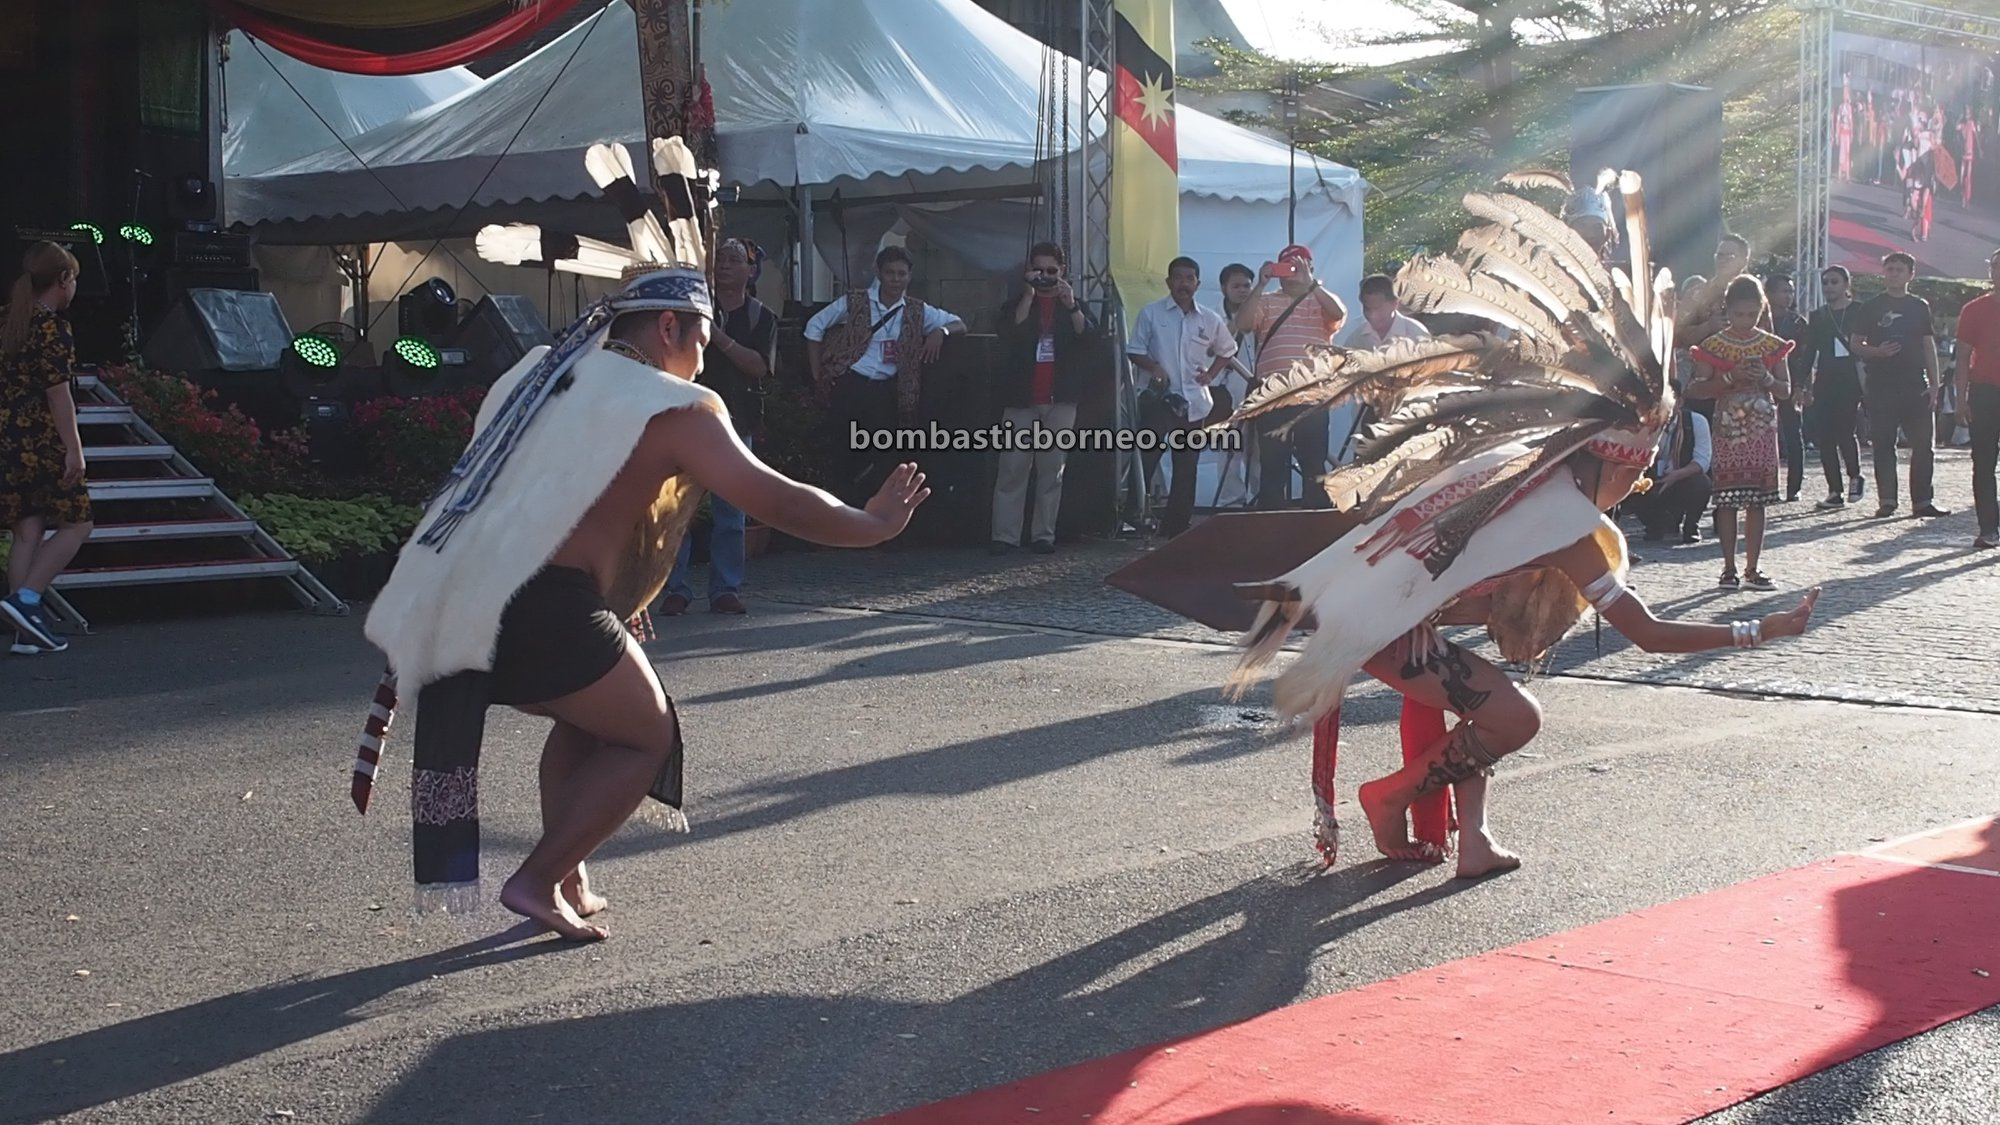 paddy harvest festival, traditional, authentic, budaya, Malaysia, indigenous, native, tribe, tourist attraction, Travel guide, Trans Borneo, 婆罗洲达雅丰收节, 砂拉越加央族, 原住民土著文化, Orang Ulu,